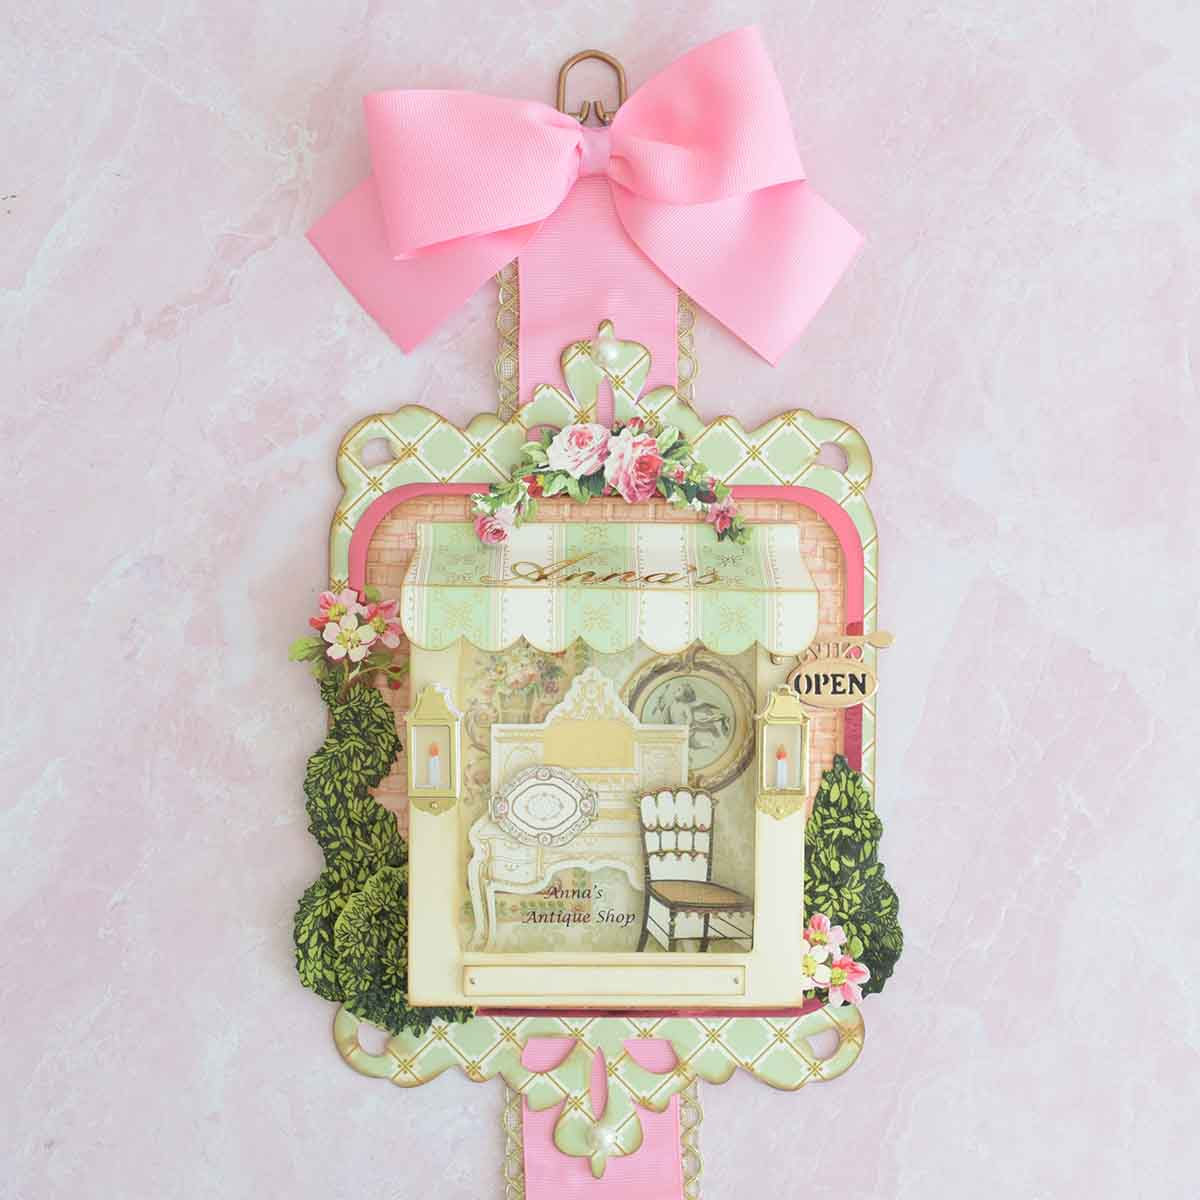 Top tier of Anna's hanging card. Store vignette with antiques, topiaries and flowers.